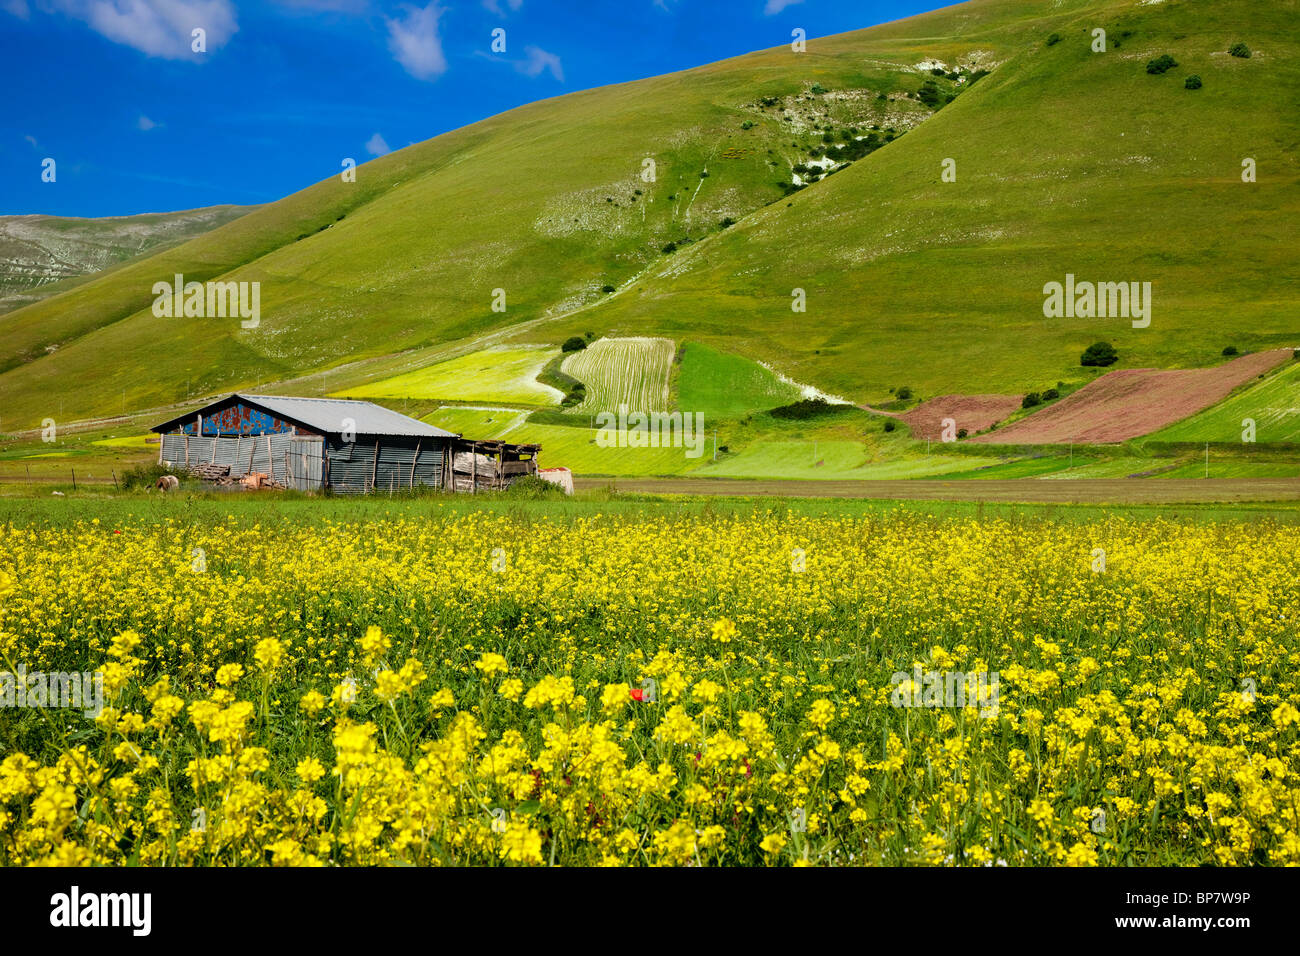 Farmer's shack surrounded by wildflowers in the Piano Grande near Castelluccio, Umbria Italy - Stock Image